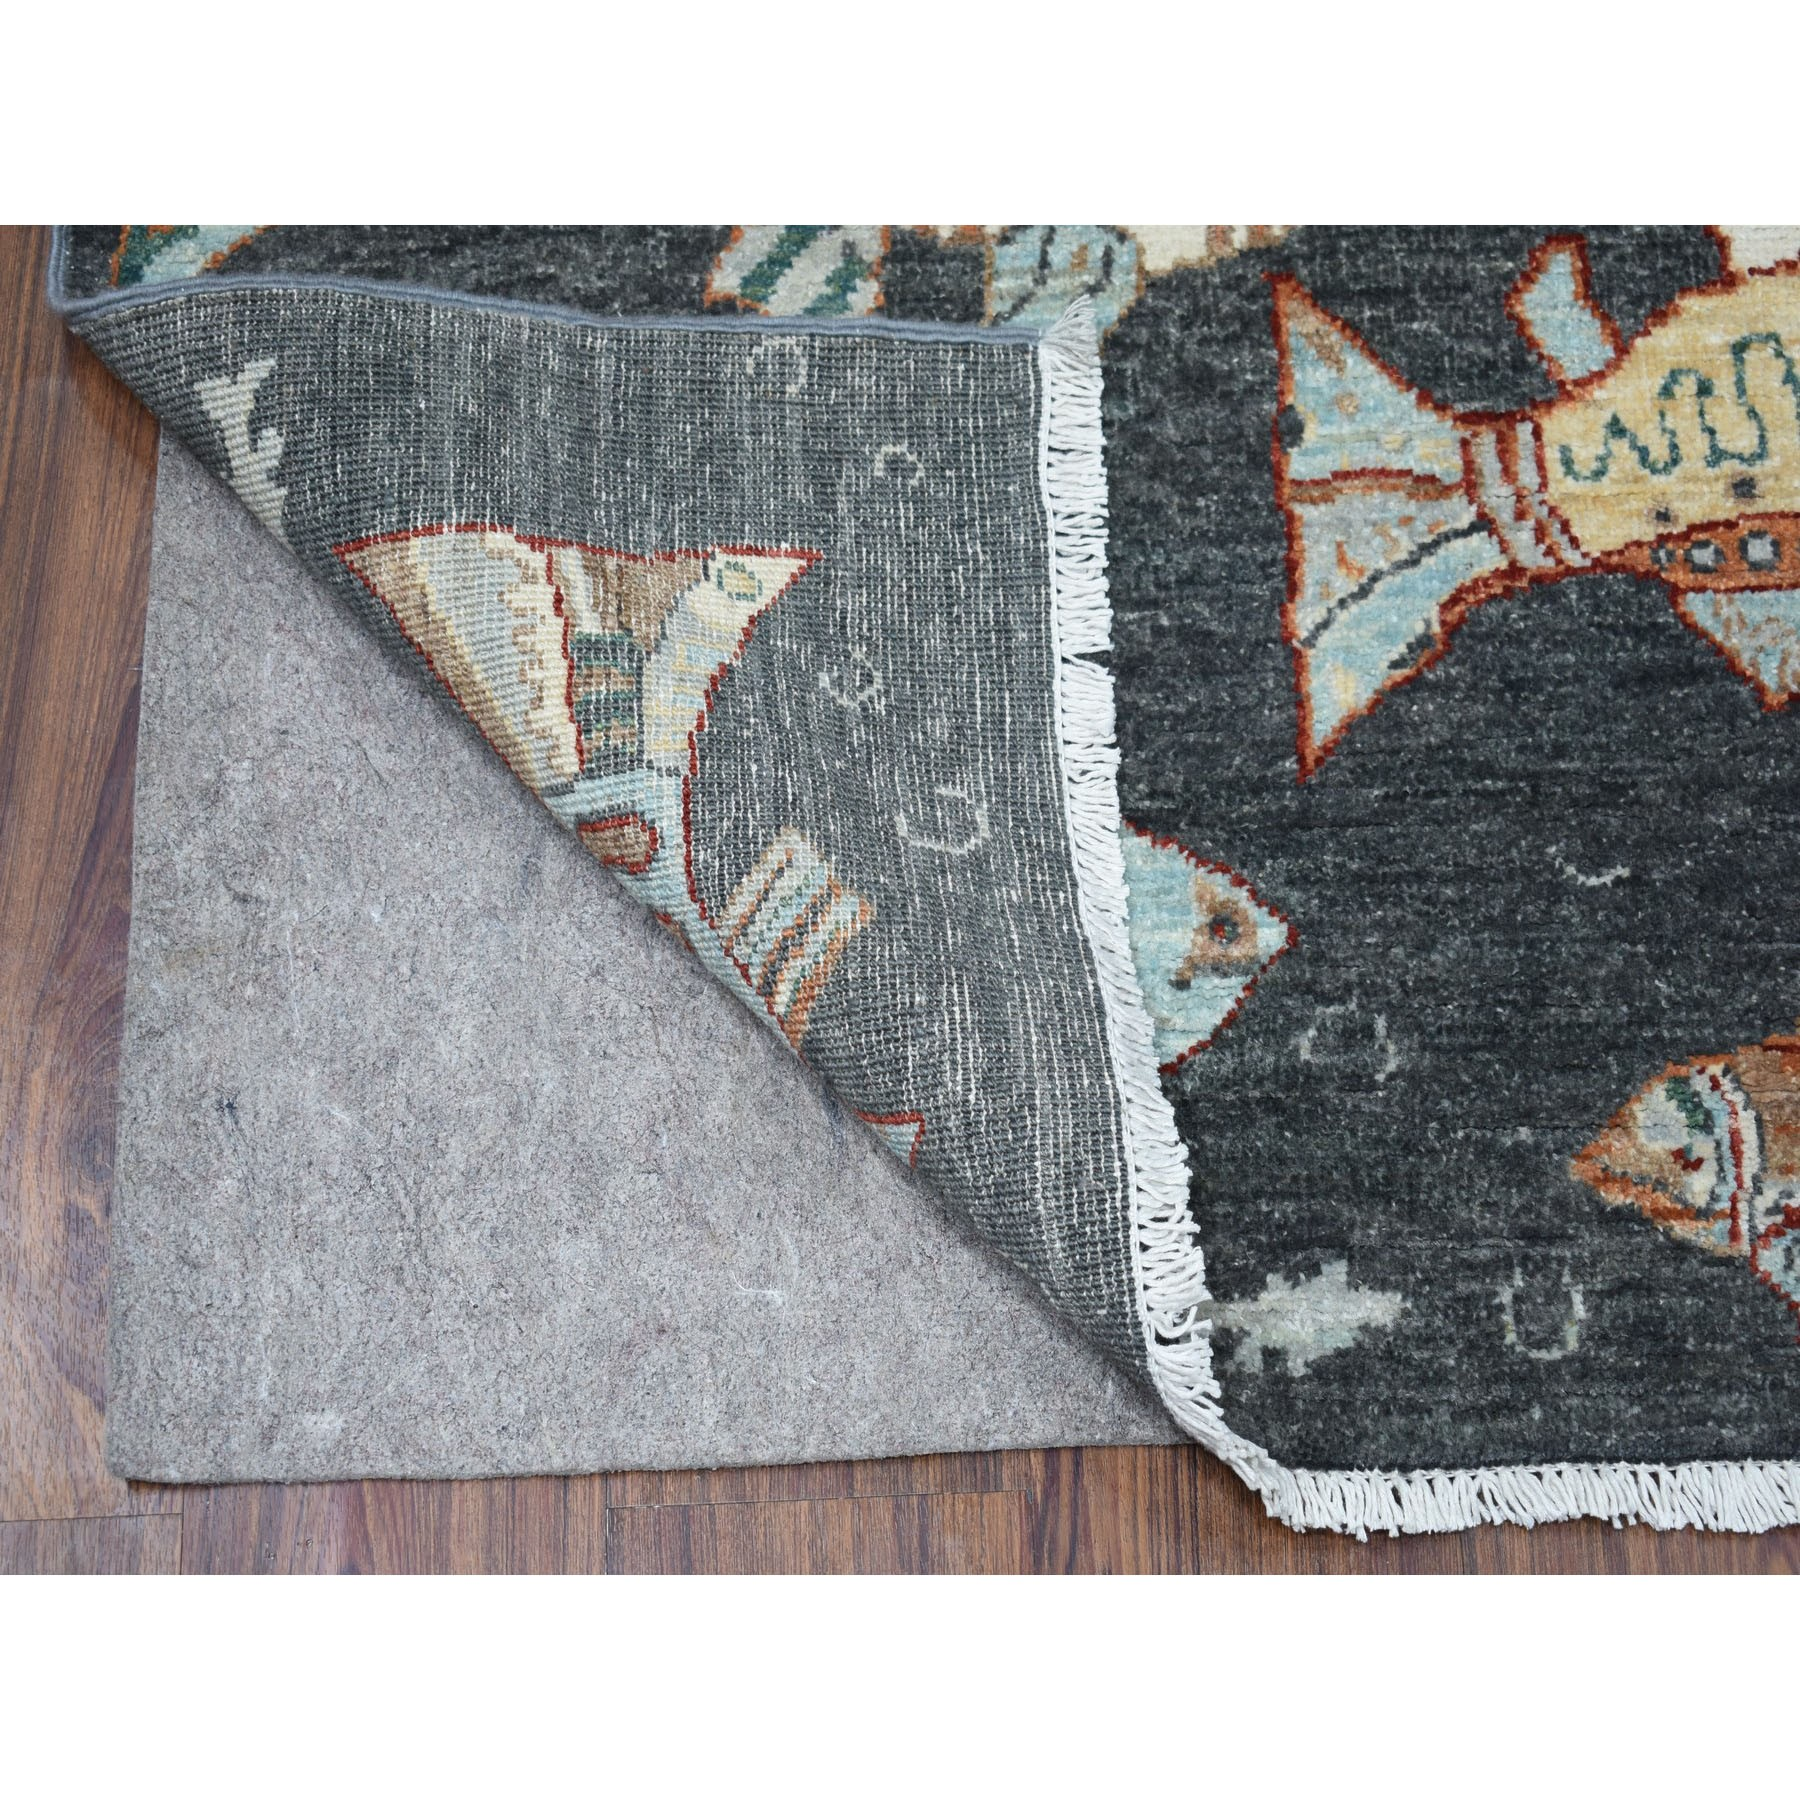 3-1 x4-8  Charcoal Black Oceanic Fish Design Pure Wool Afghan Peshawar Hand Knotted Oriental Rug